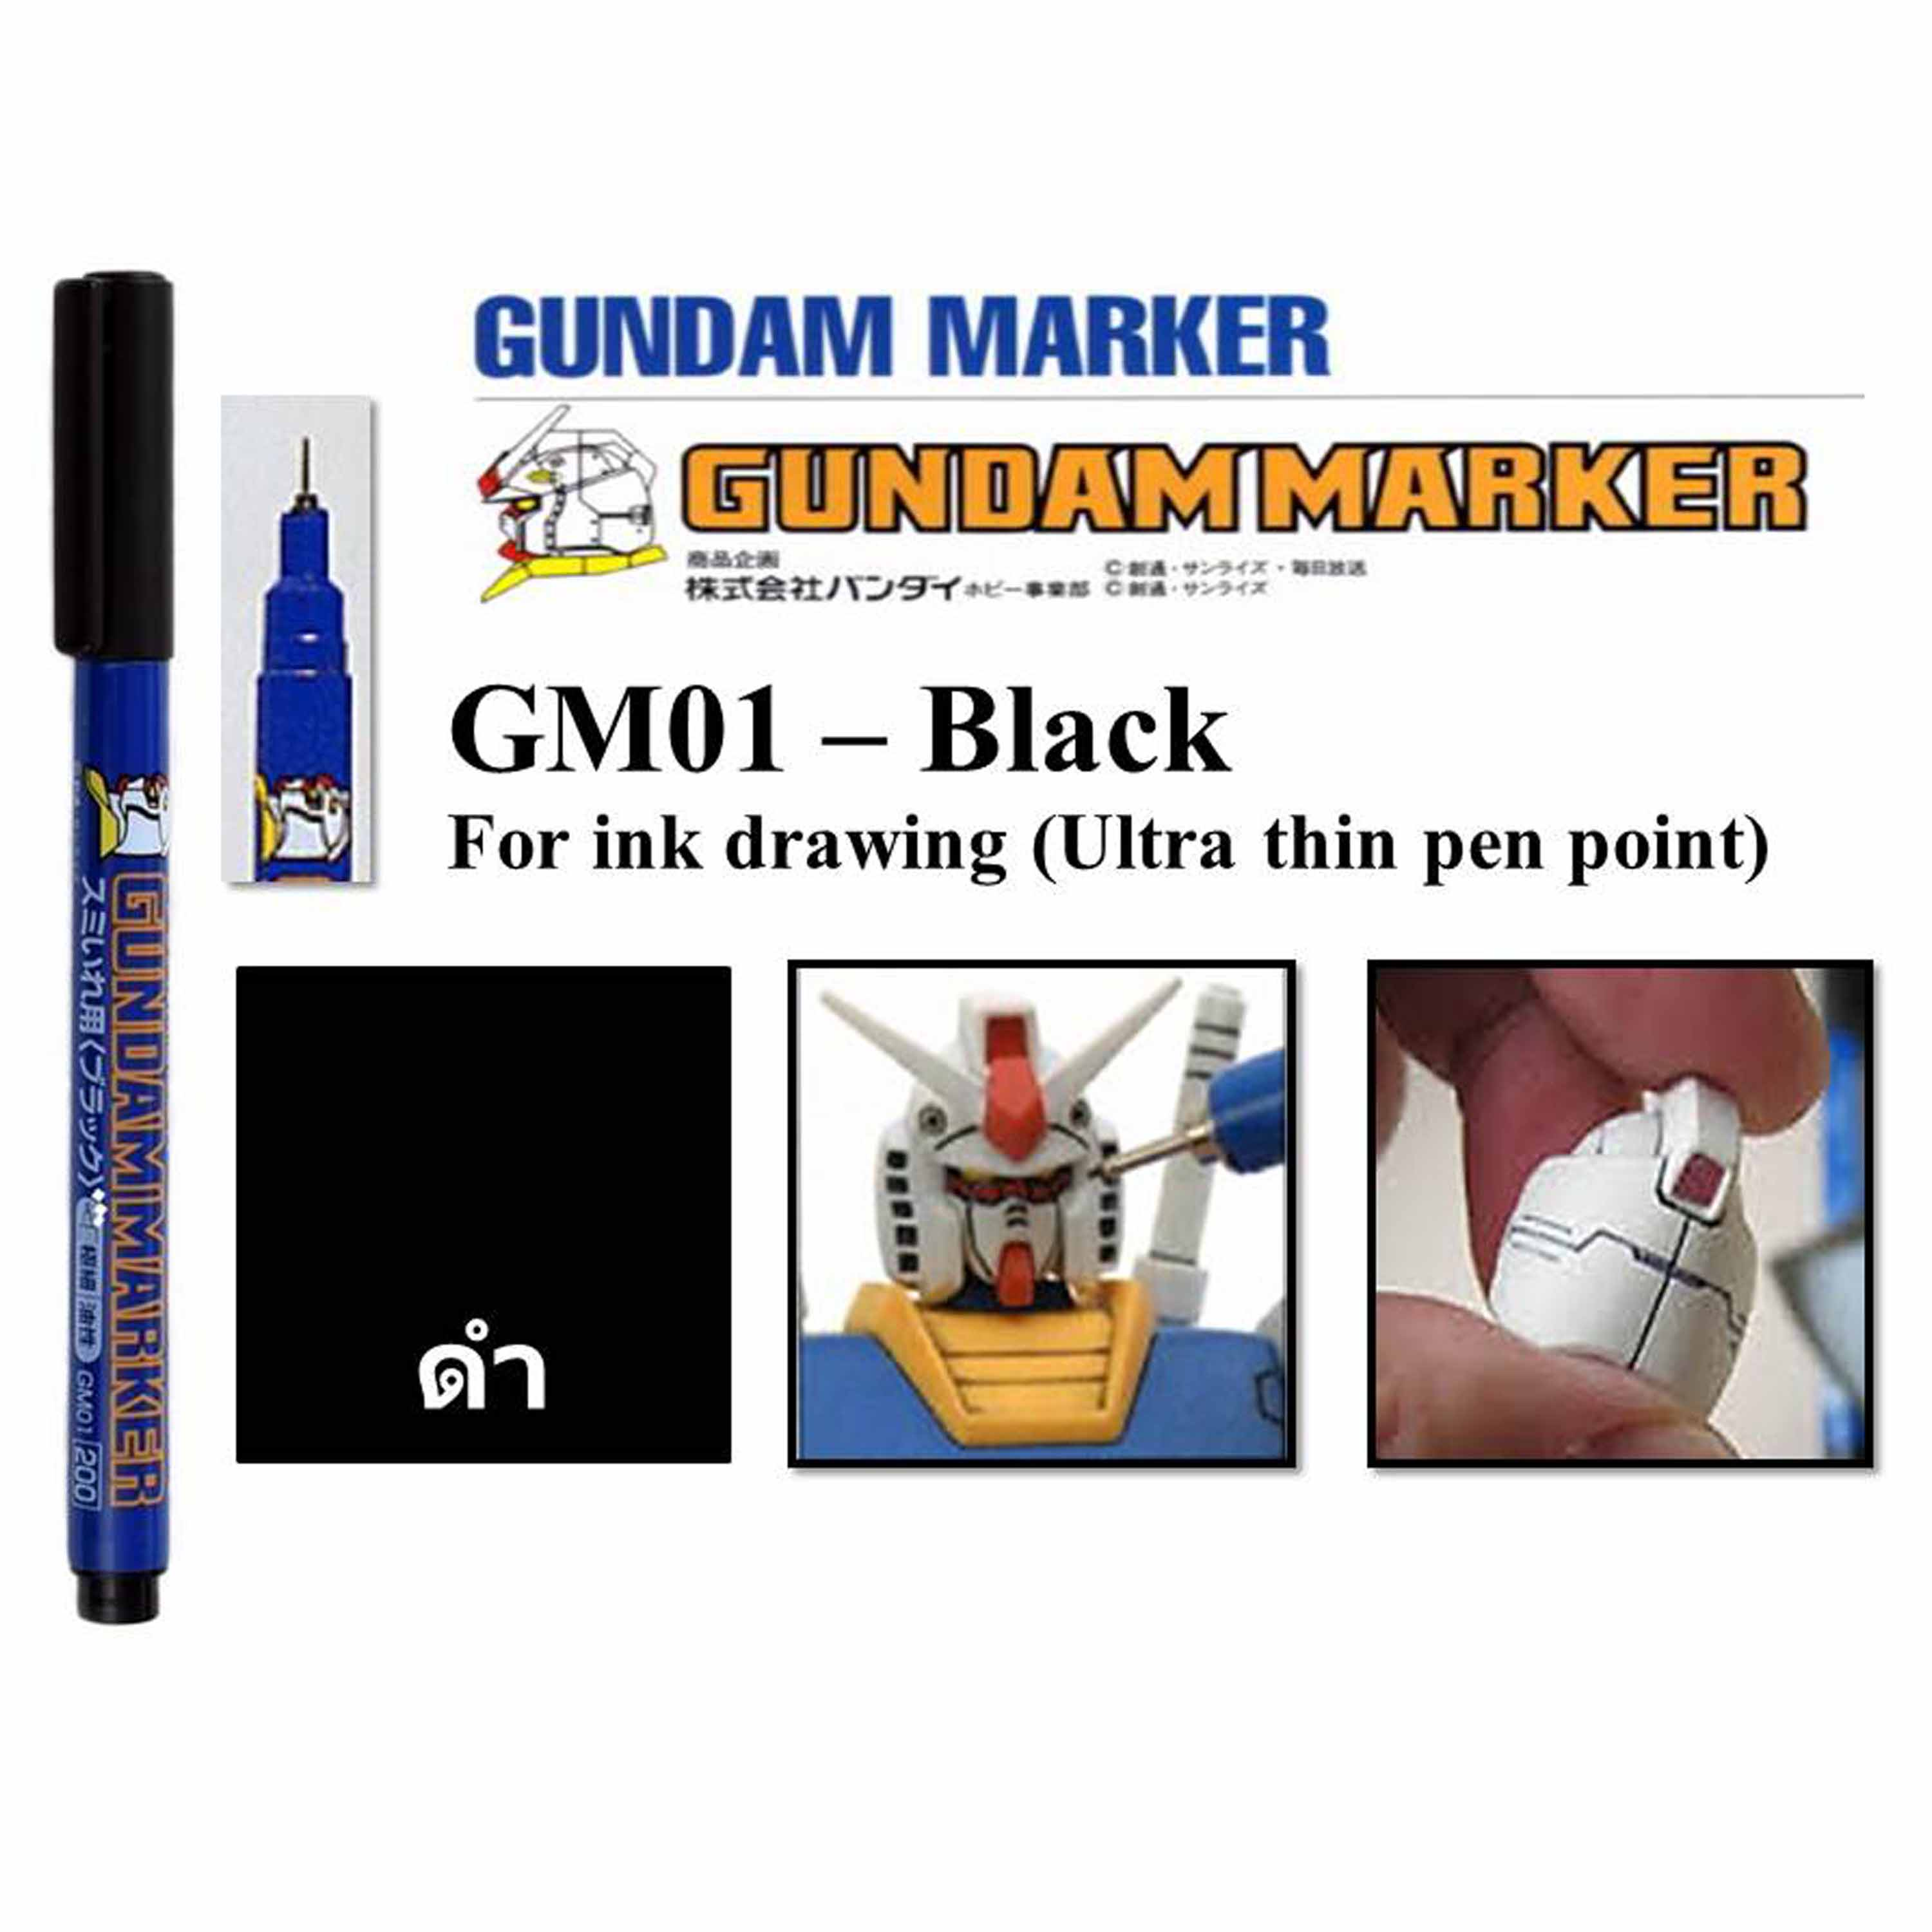 Gundam Maker GM01